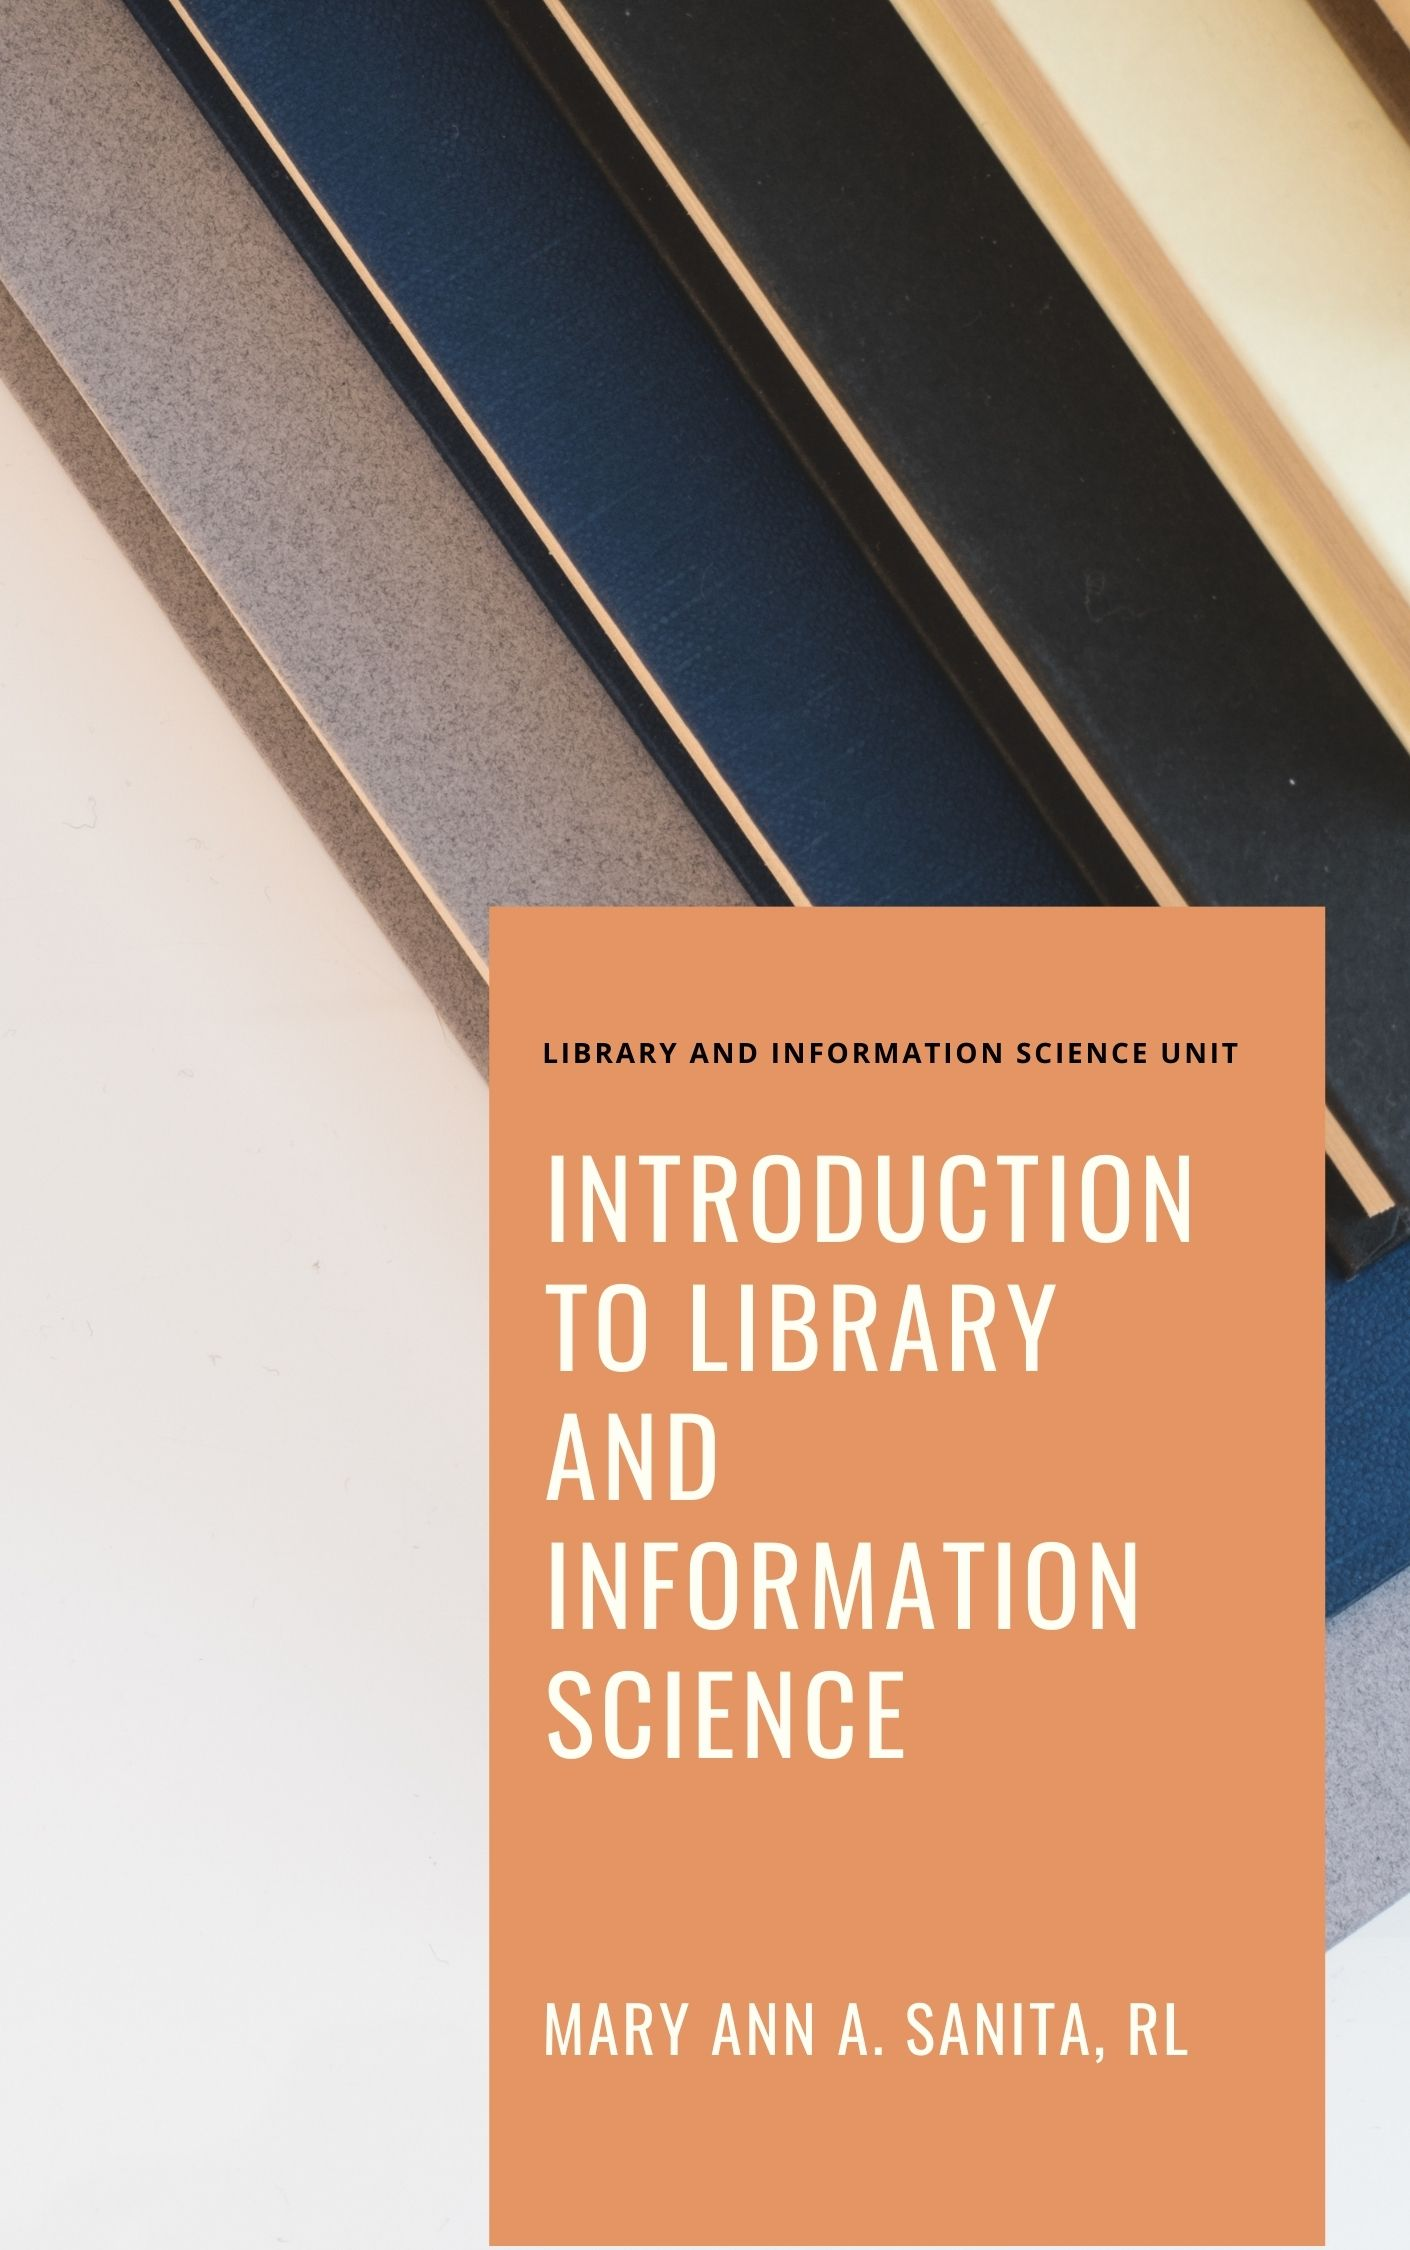 A411 (AL11) LIS 101 - introduction to Library and Information Science